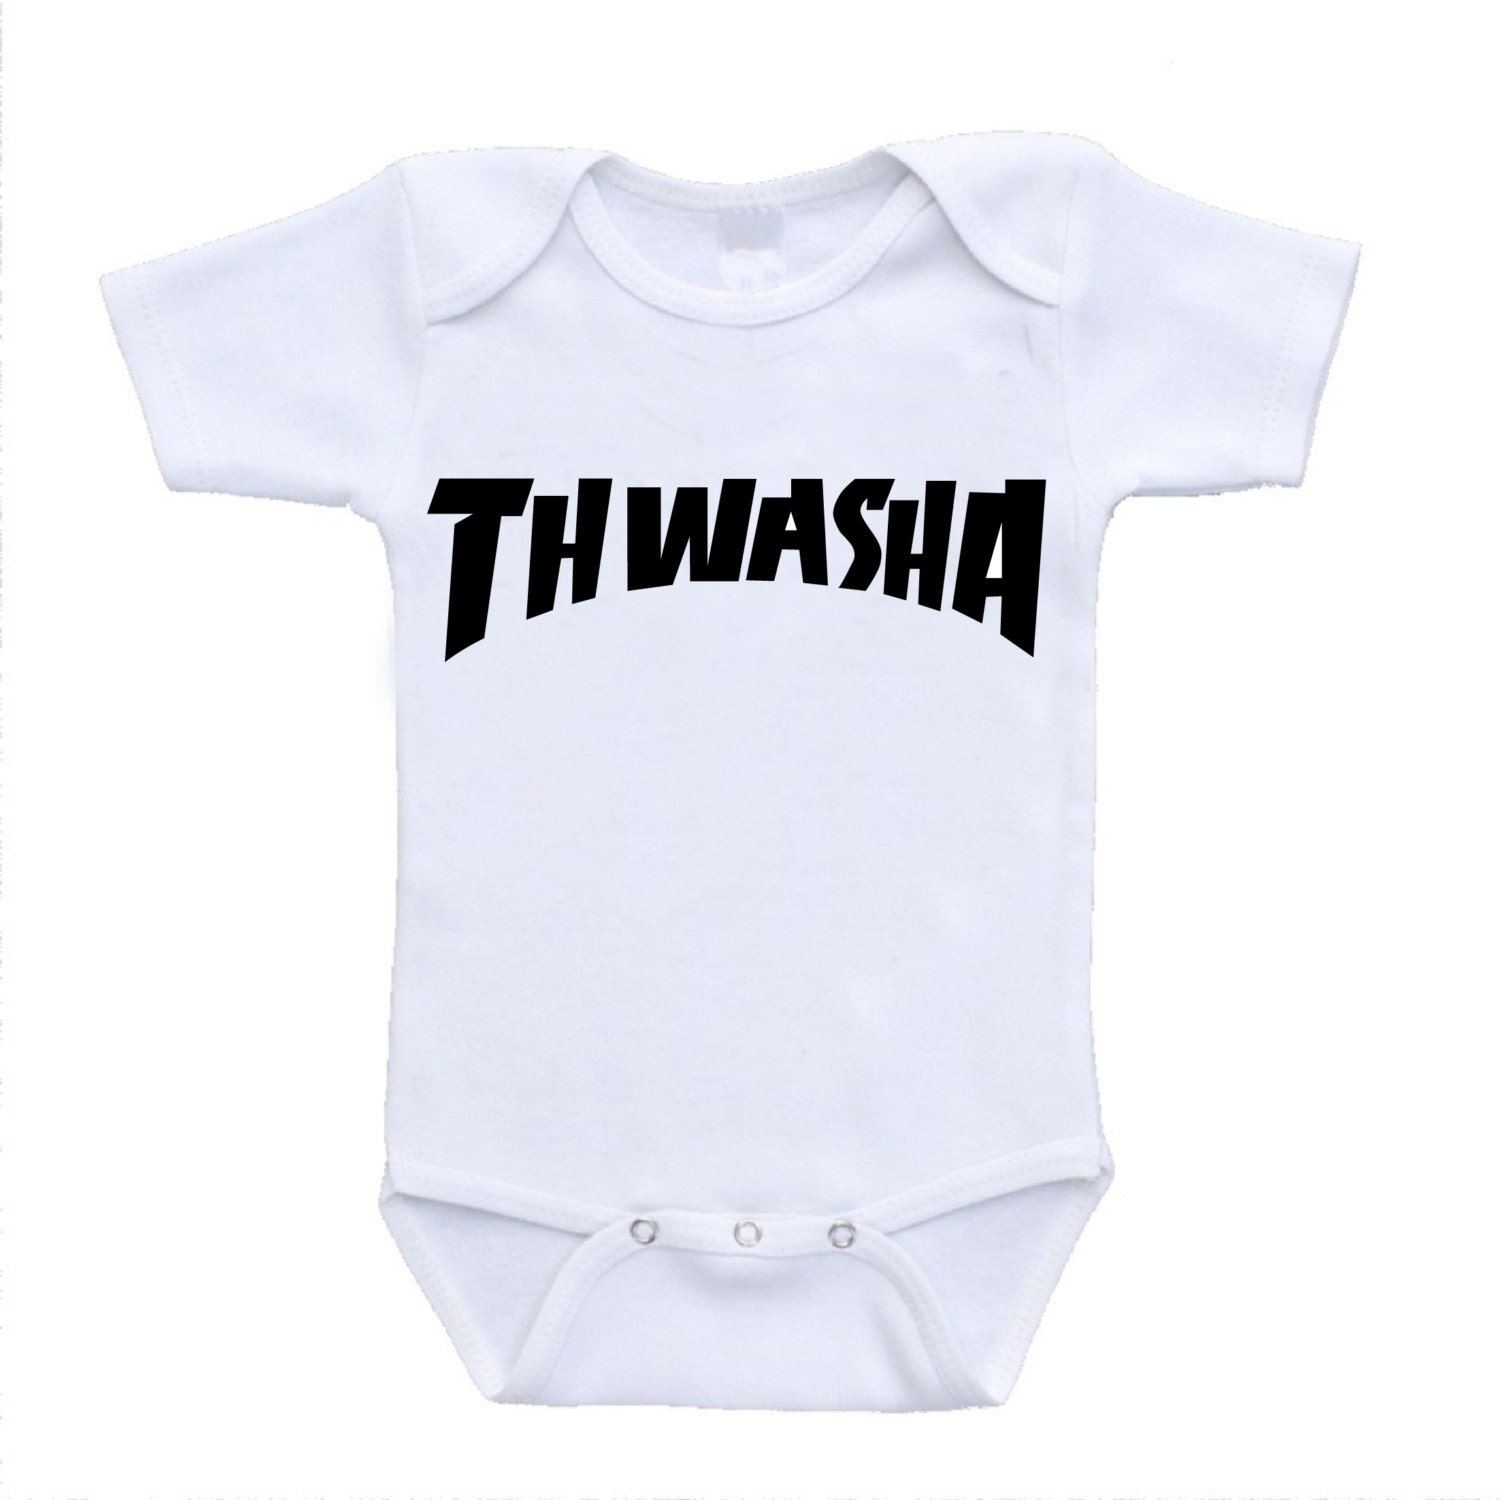 Baby Skateboard Clothes Newest and Cutest Baby Clothing Collection